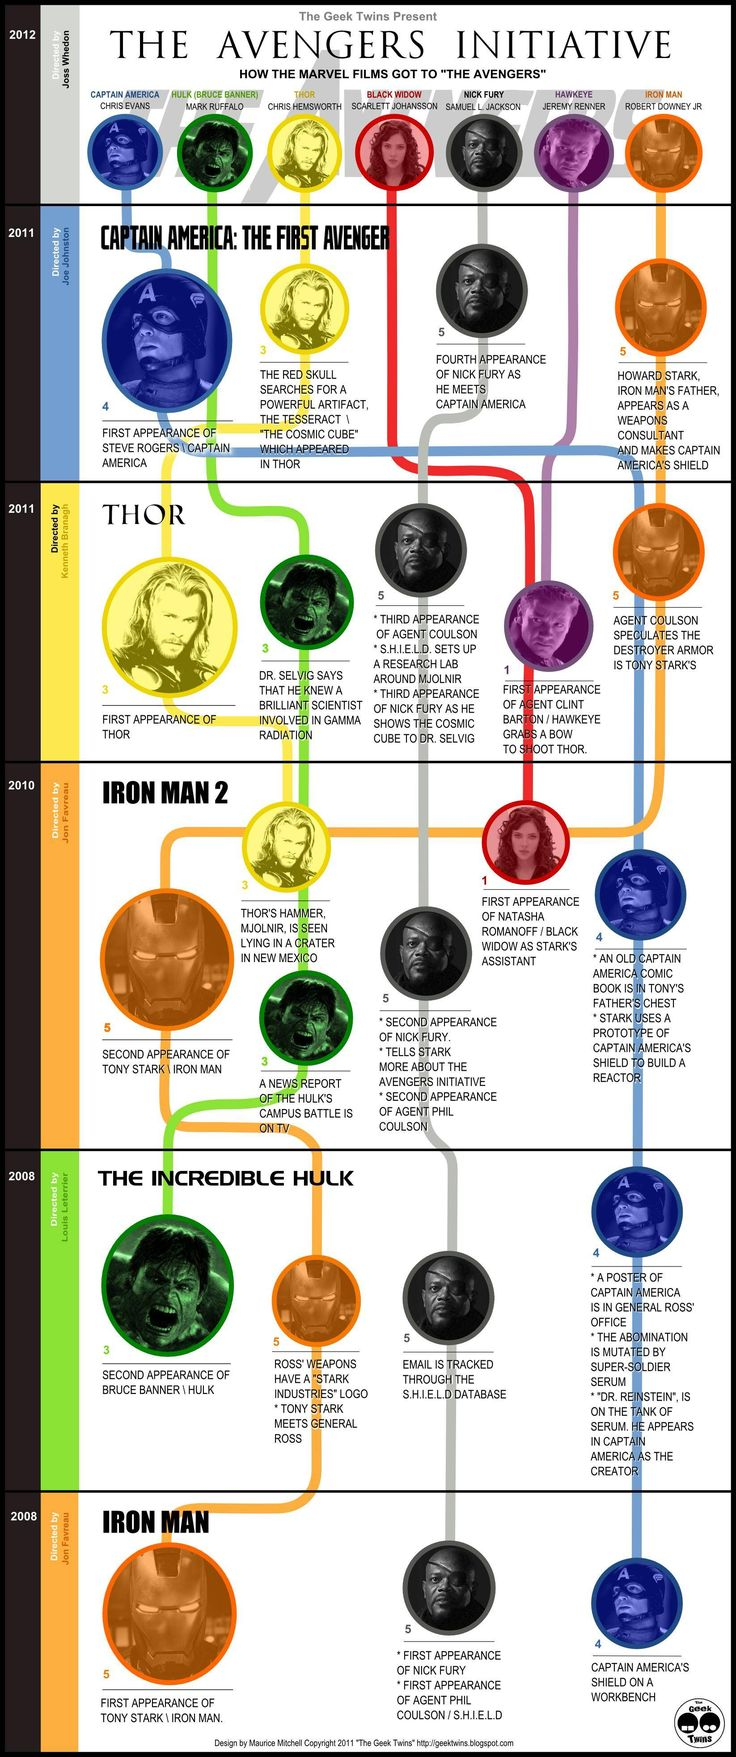 The Avengers Timeline. Handy information.